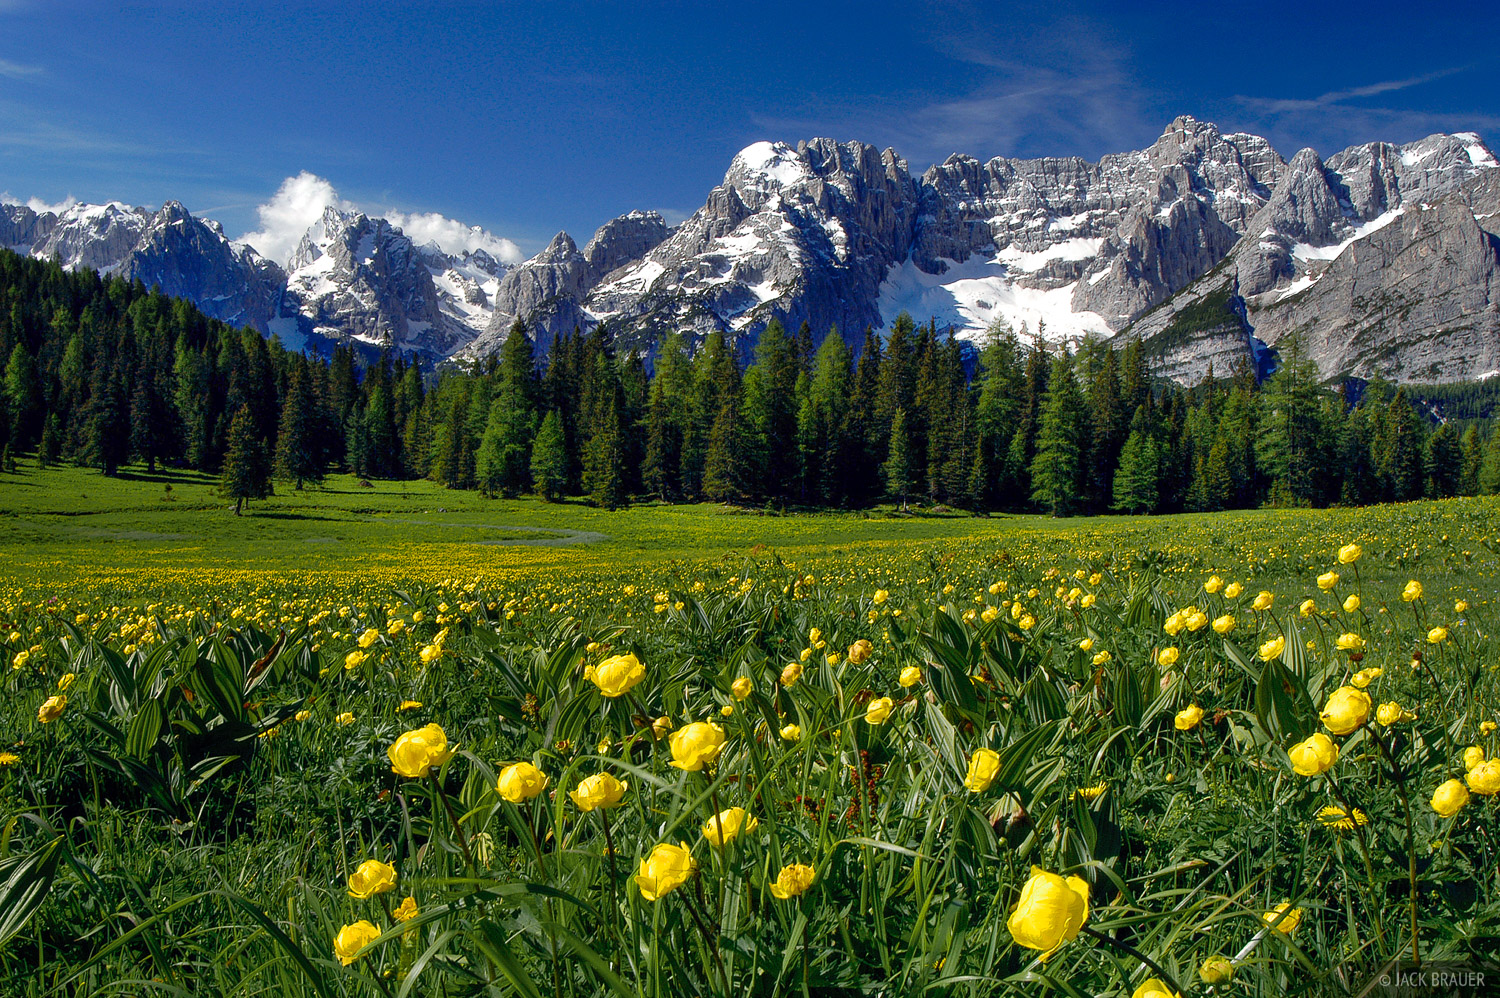 wildflowers, Sorapis, Lago Misurina, Dolomites, Italy, Alps, photo